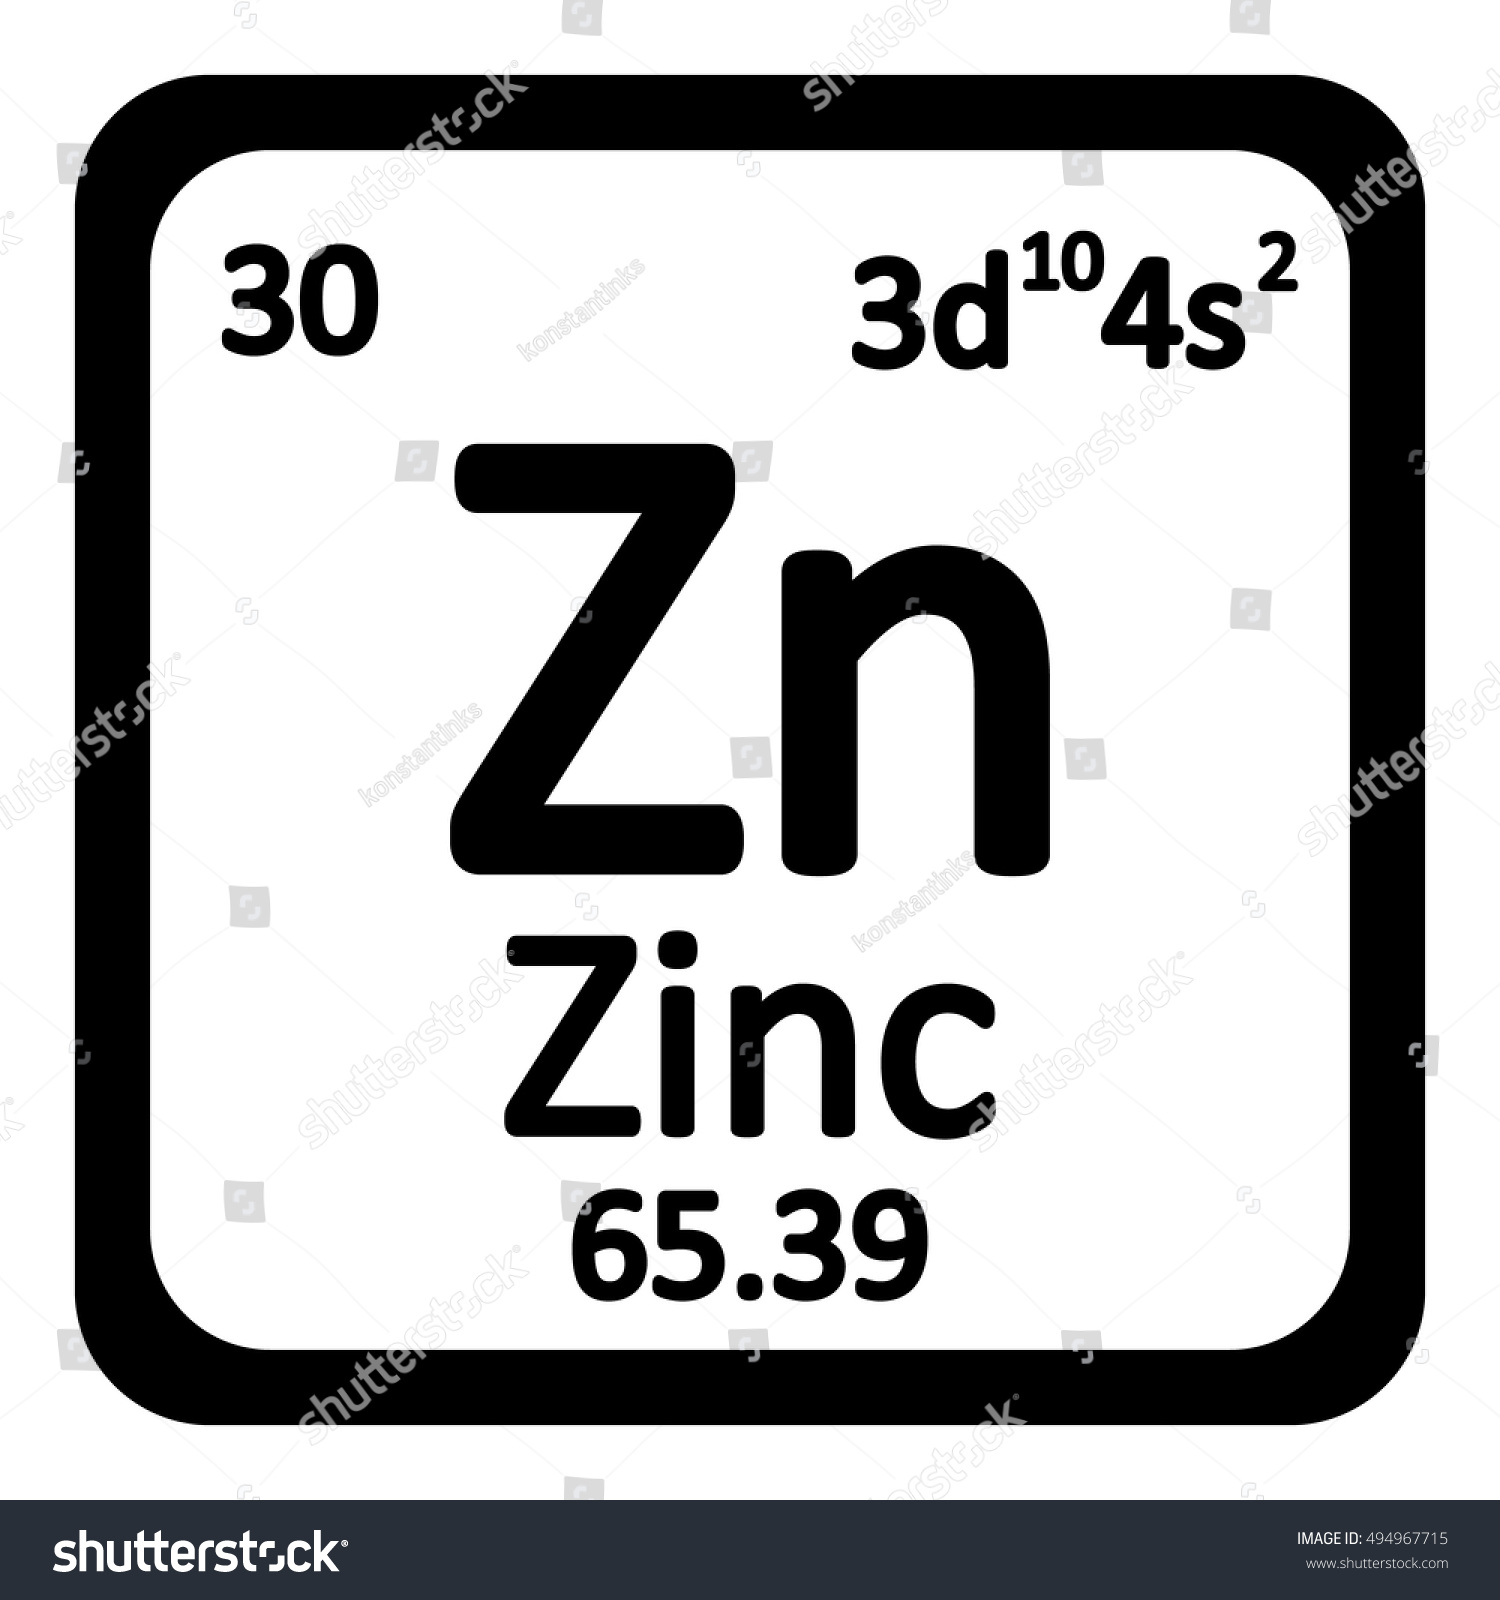 Periodic table element zinc icon on stock vector 494967715 periodic table element zinc icon on white background vector illustration gamestrikefo Image collections